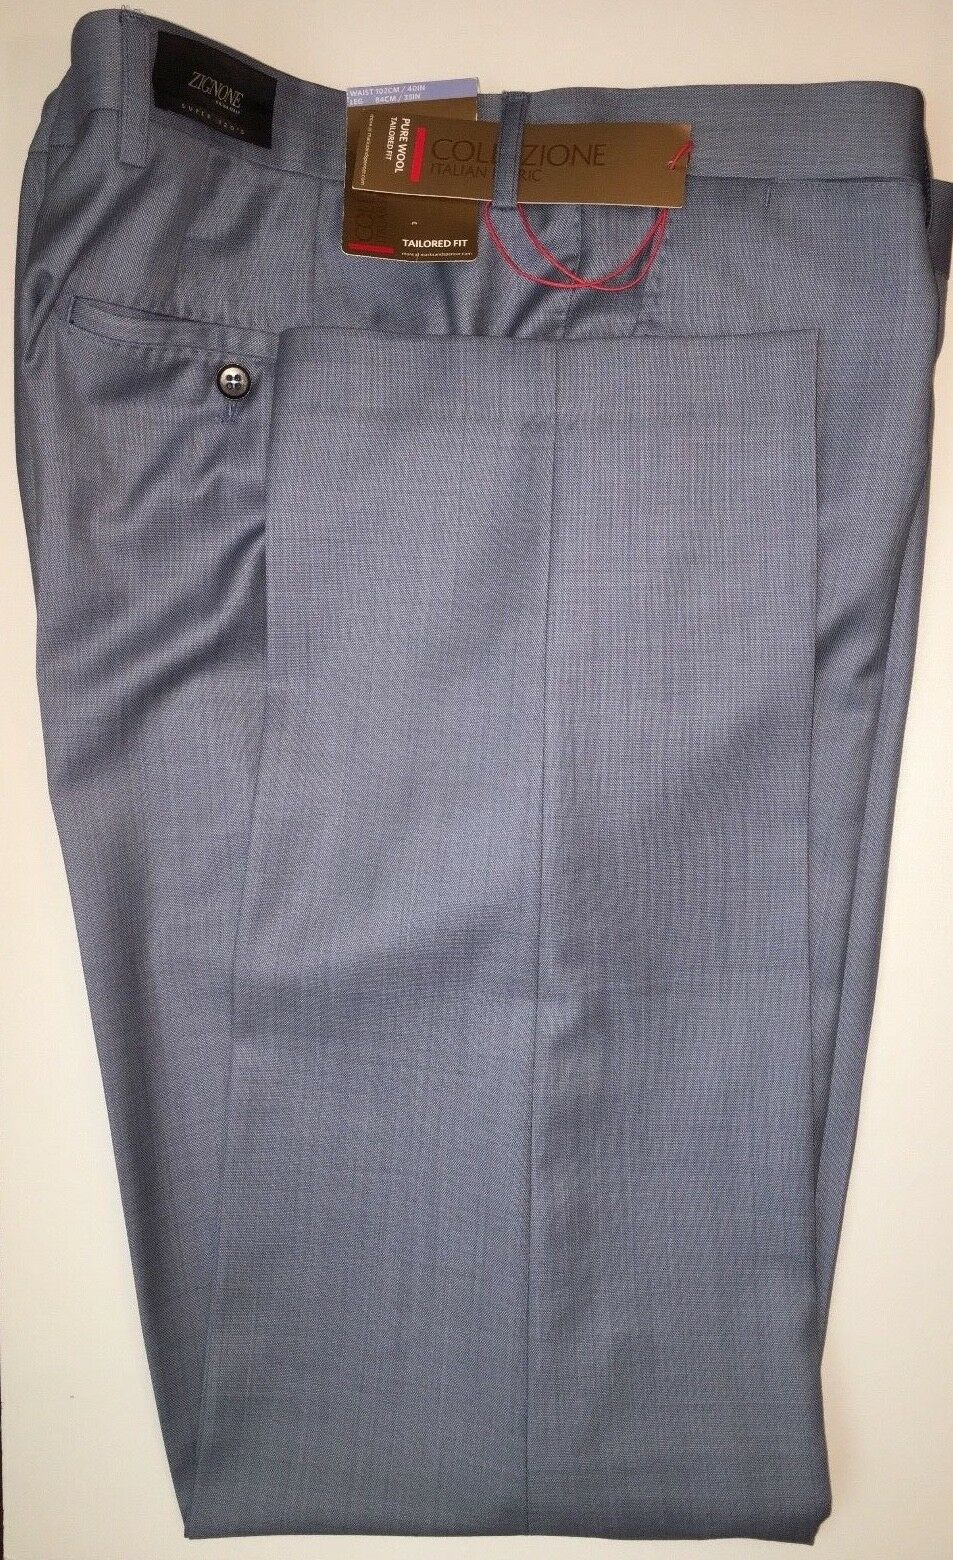 M&S Collezione (Zignone, ) Tailored Fit flat Front TROUSERS  PRP